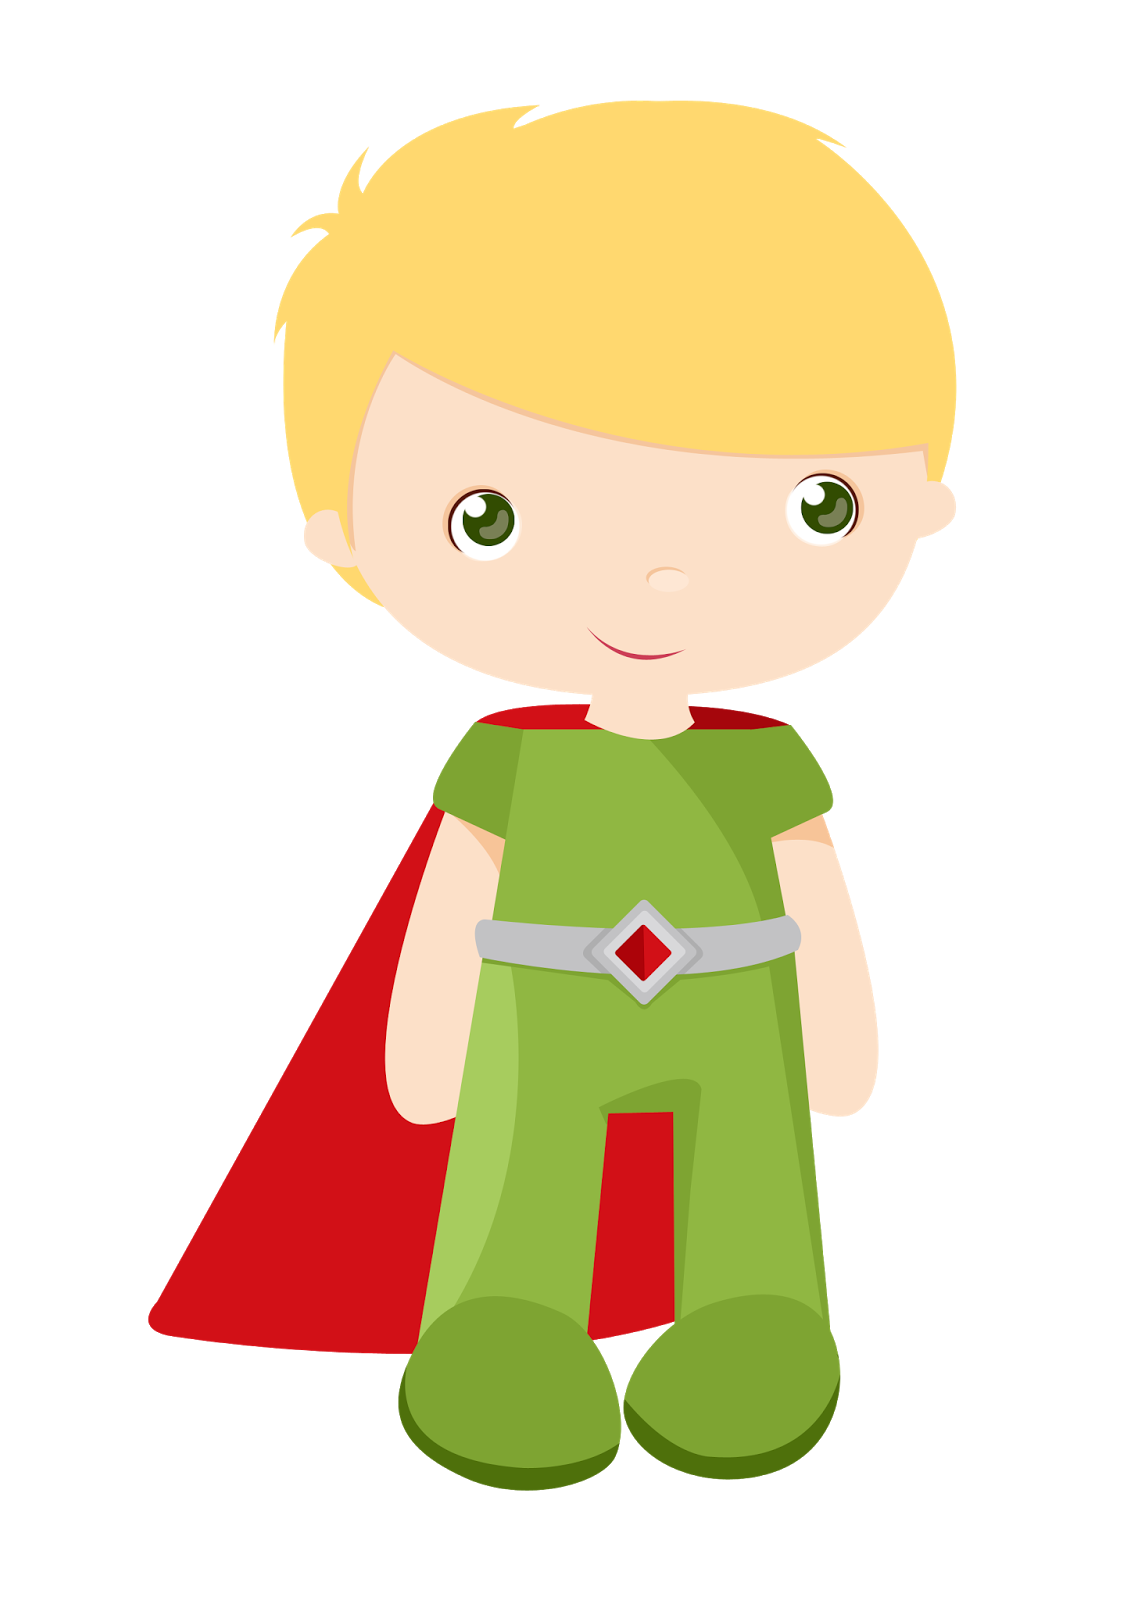 Todd Clipart 20 Fee Cliparts Download Imagenes: Kids Dressed As Superheroes Clipart.